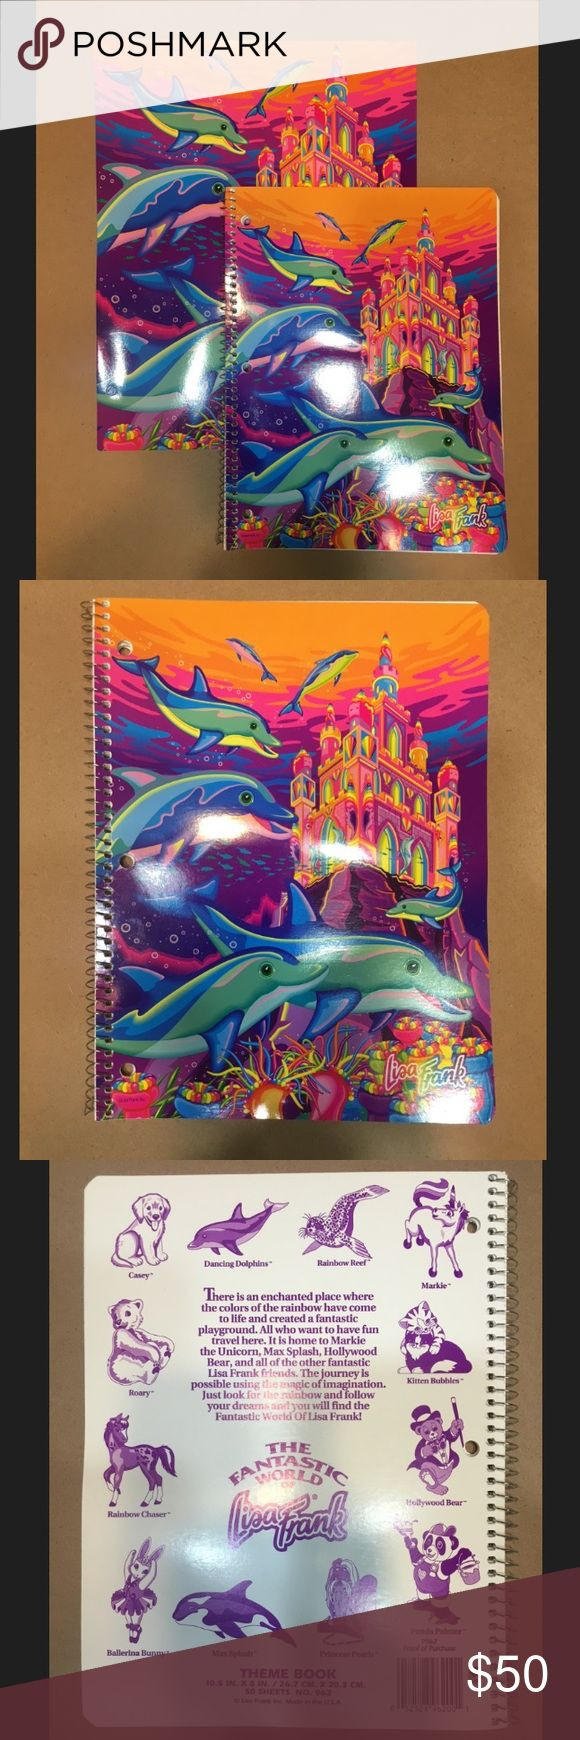 🐬 RARE🐬 Vintage Lisa Frank Dolphin Bundle Set of 90's Lisa Frank, dancing dolphin folder and notebook. These are in excellent condition and have never been used. The dancing dolphin print with the castle is a very rare Lisa Frank print and is no longer in production. Accessories